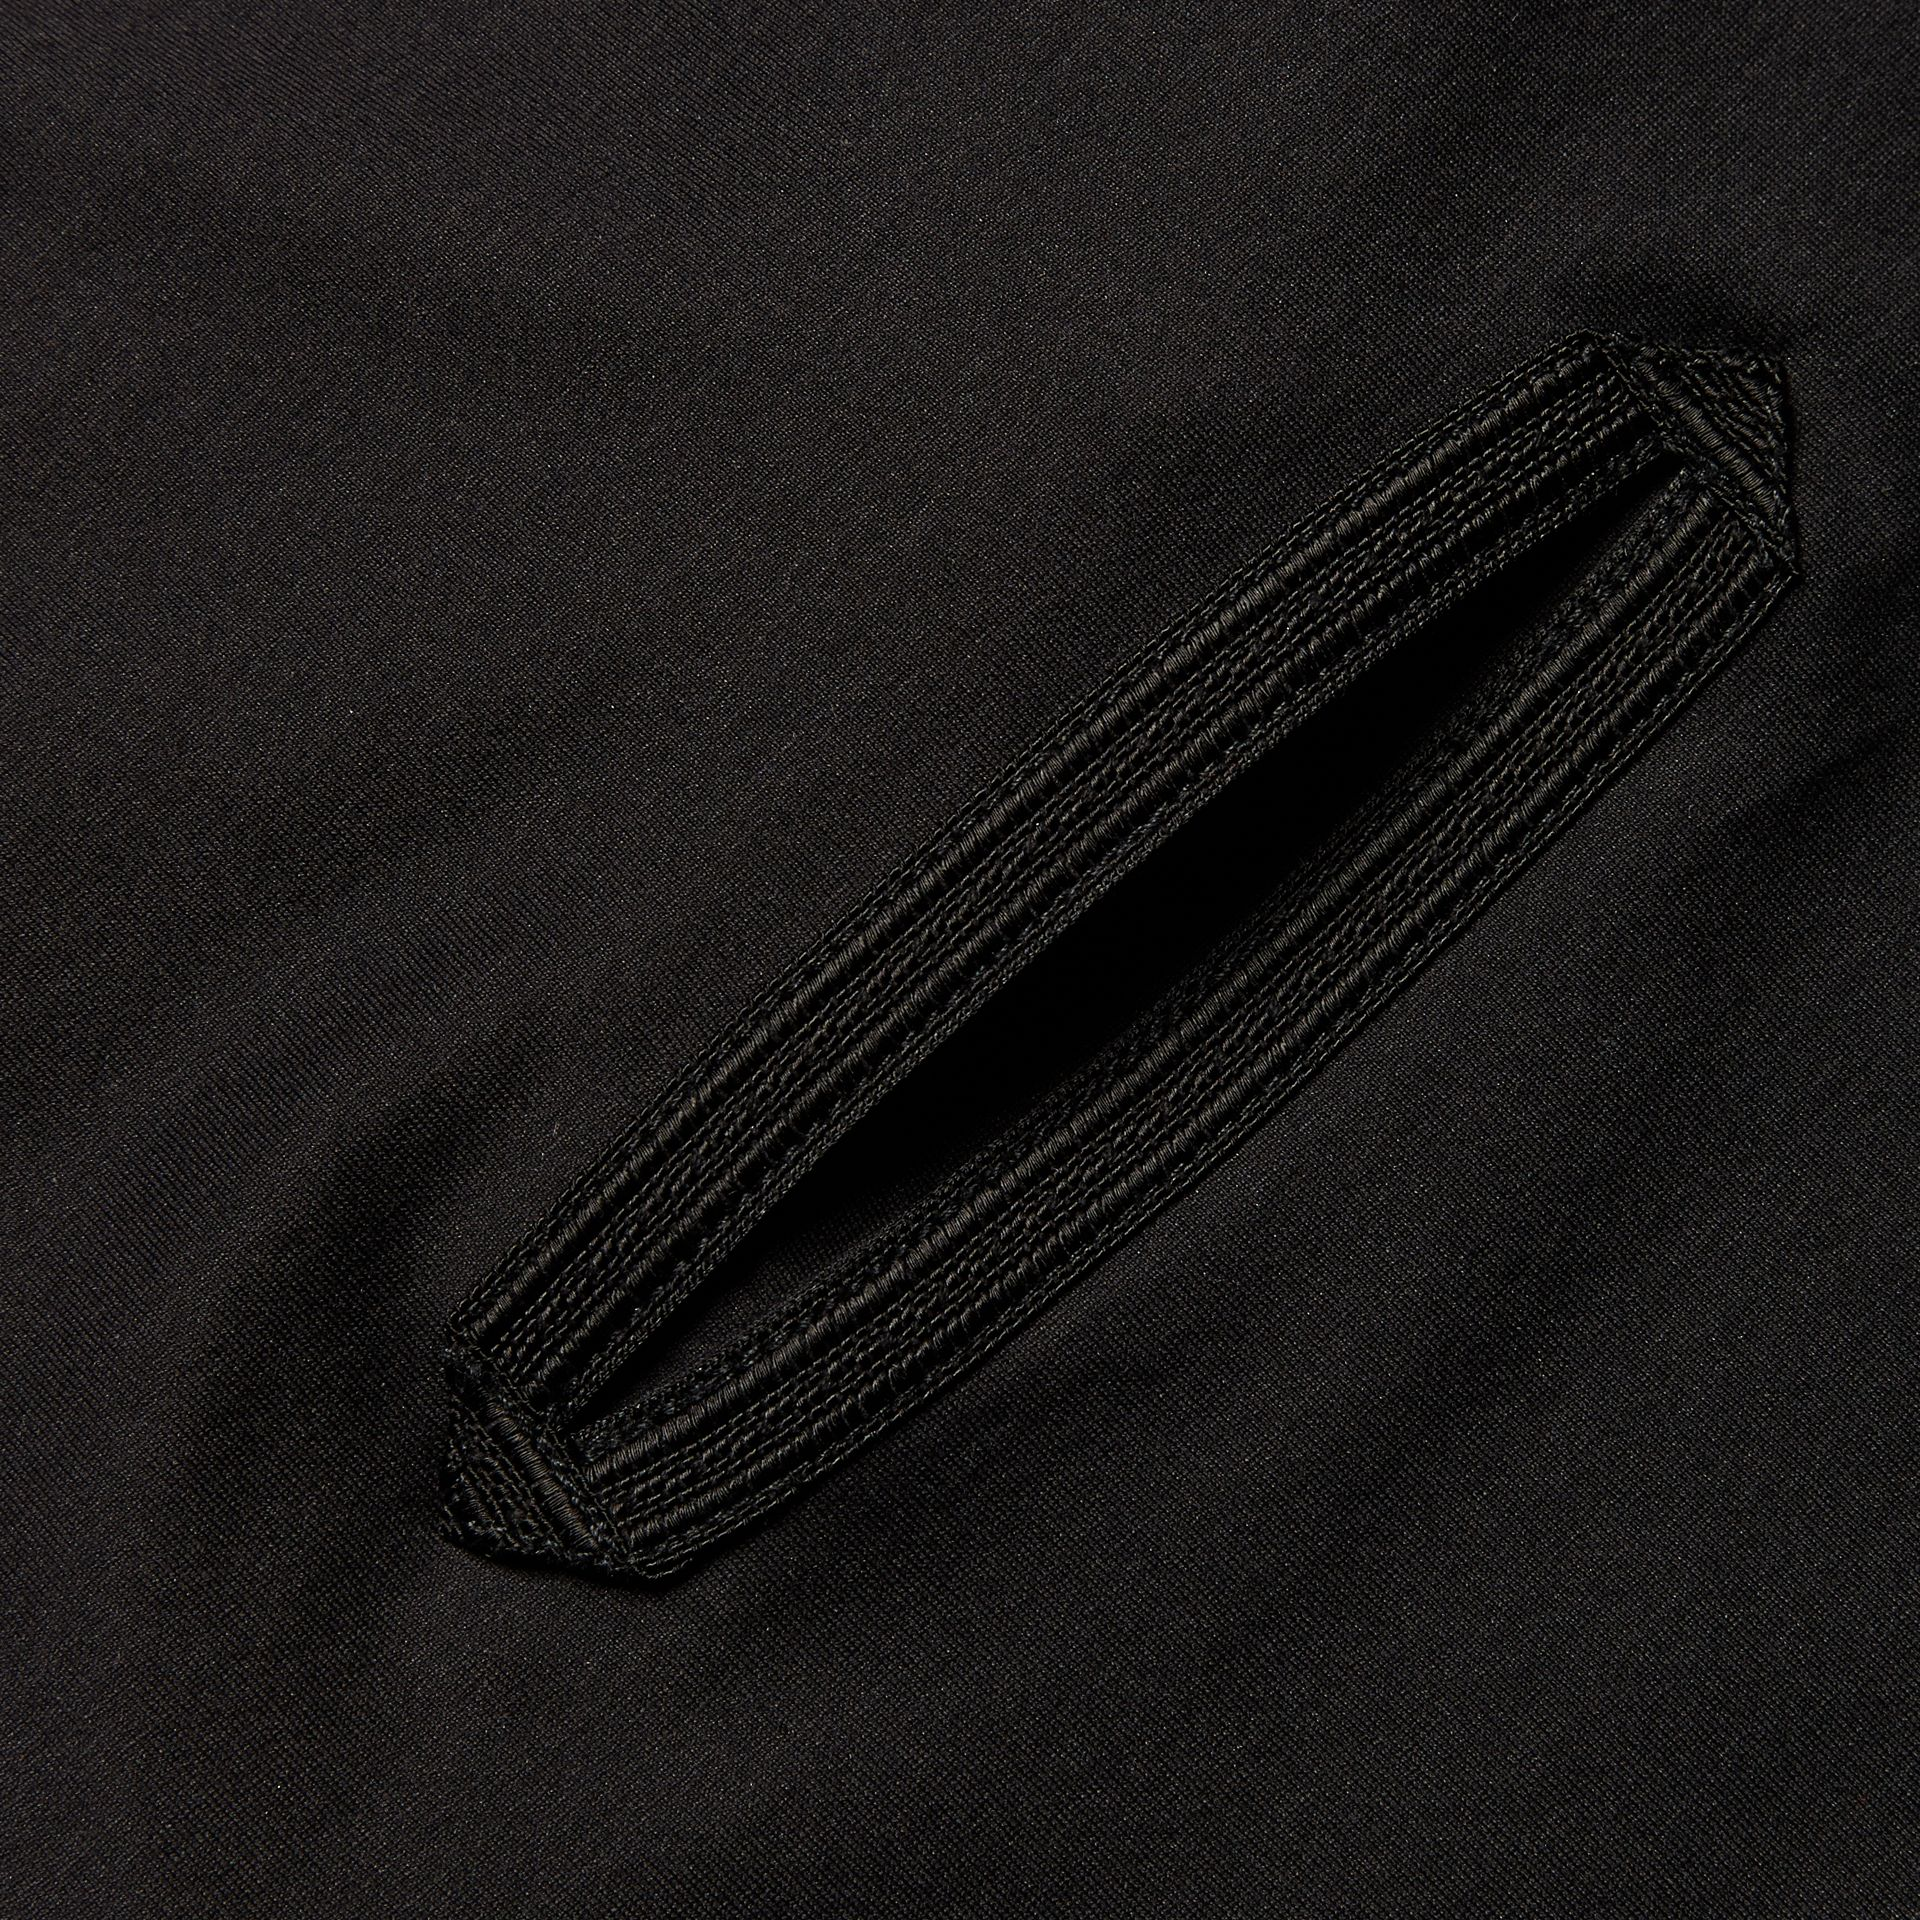 Regimental Tape Detail Cotton T-shirt Black - gallery image 2